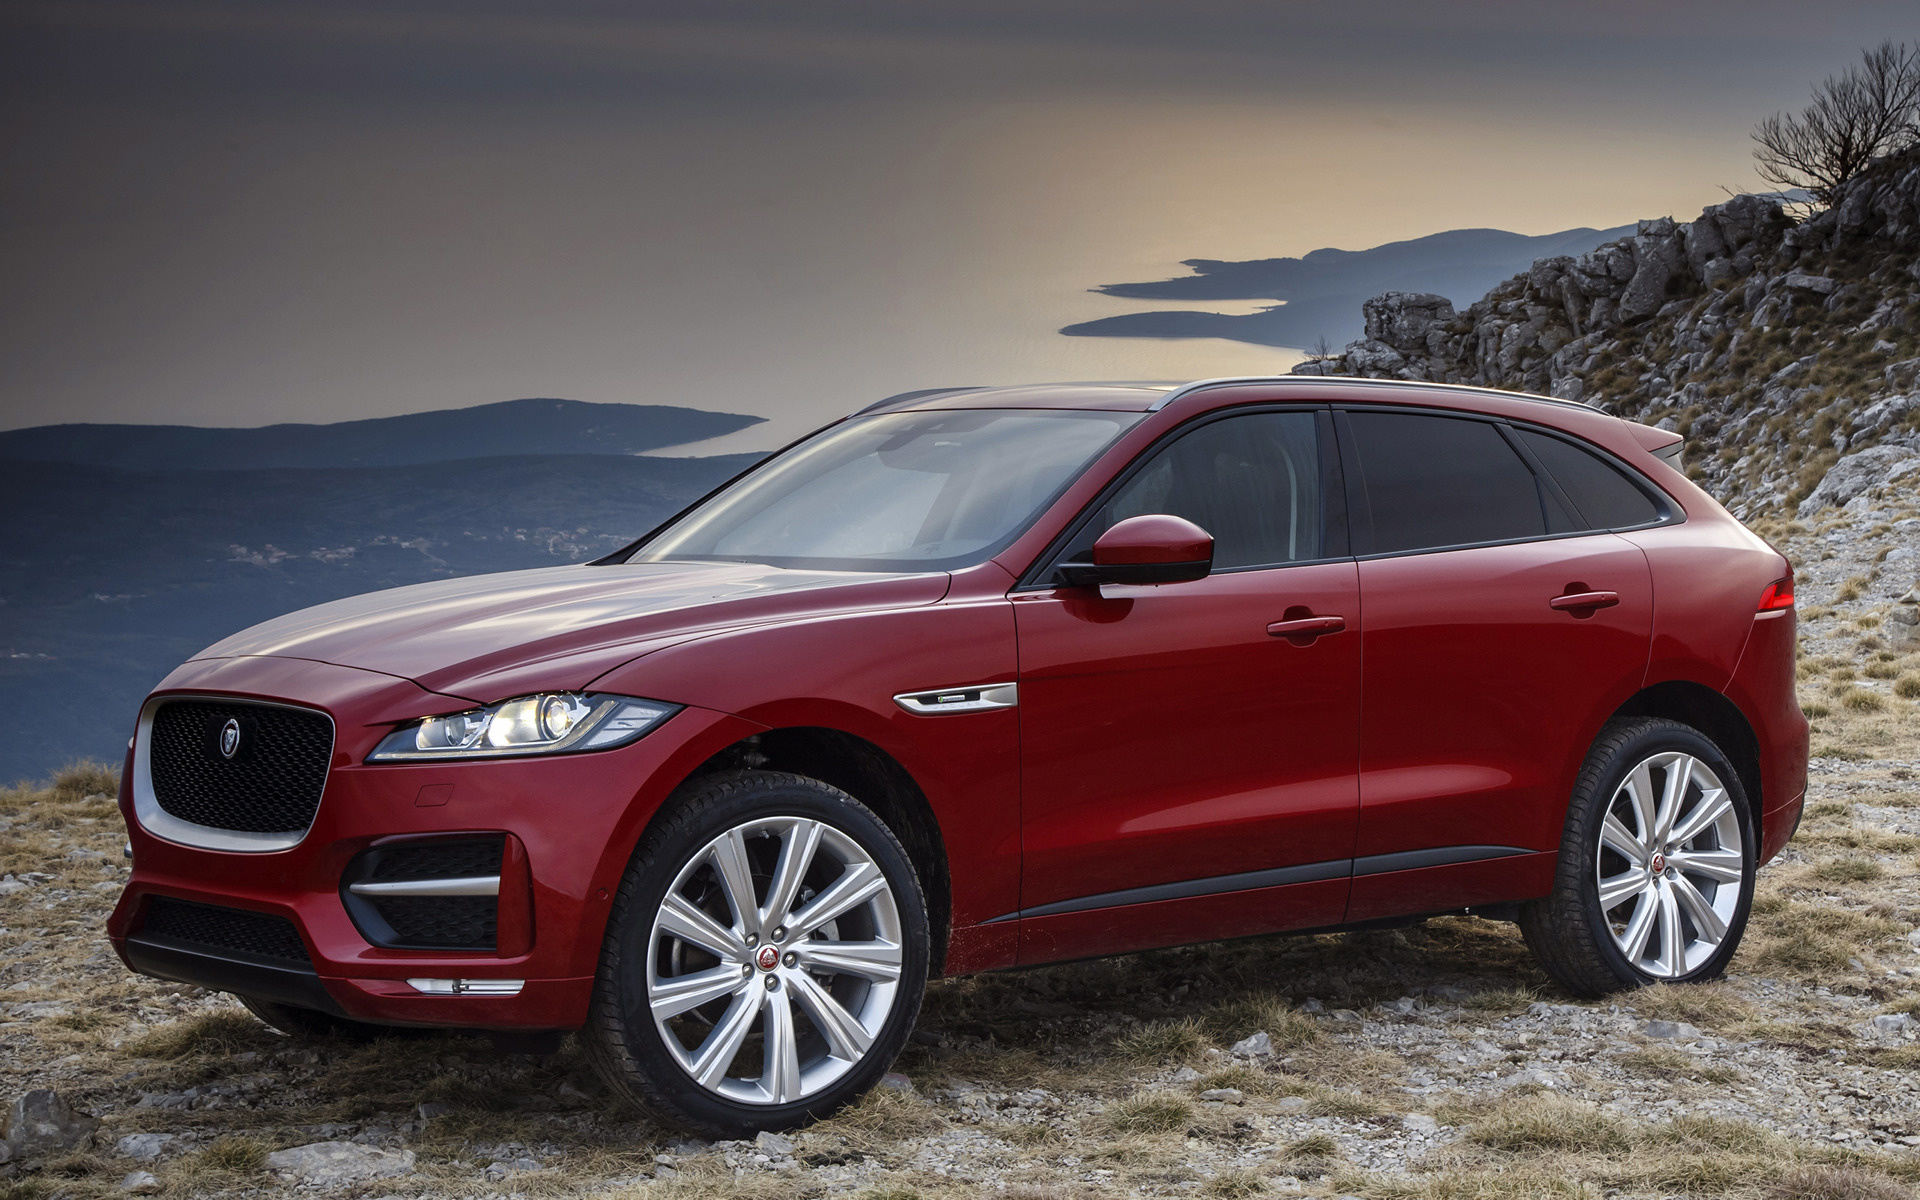 9 Seater Car >> Jaguar F-Pace R-Sport (2016) Wallpapers and HD Images - Car Pixel